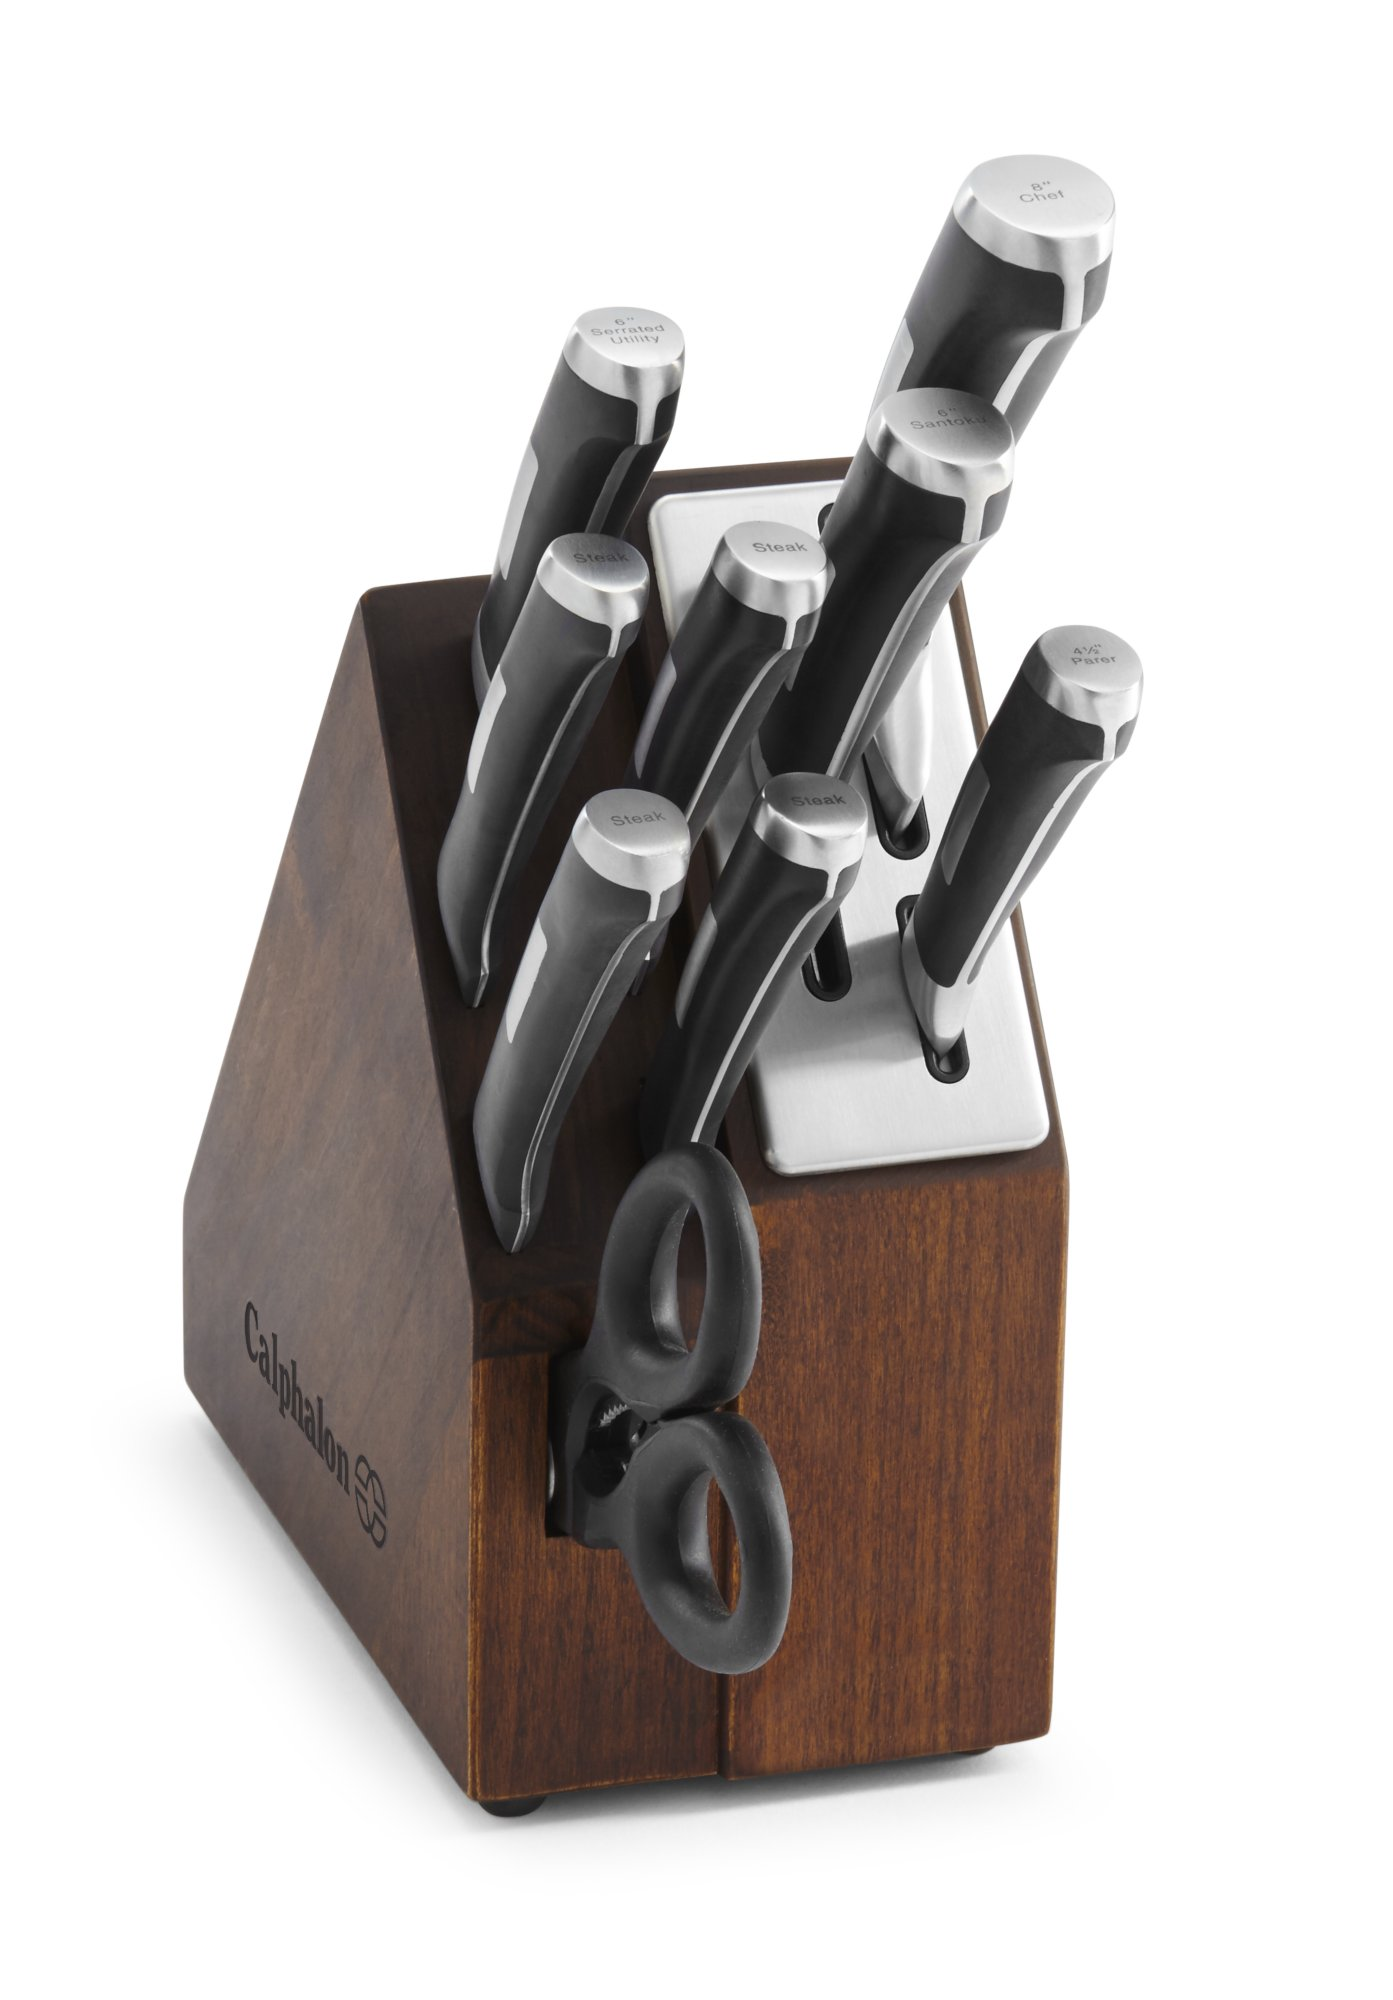 self-sharpening knife sets | calphalonusastore